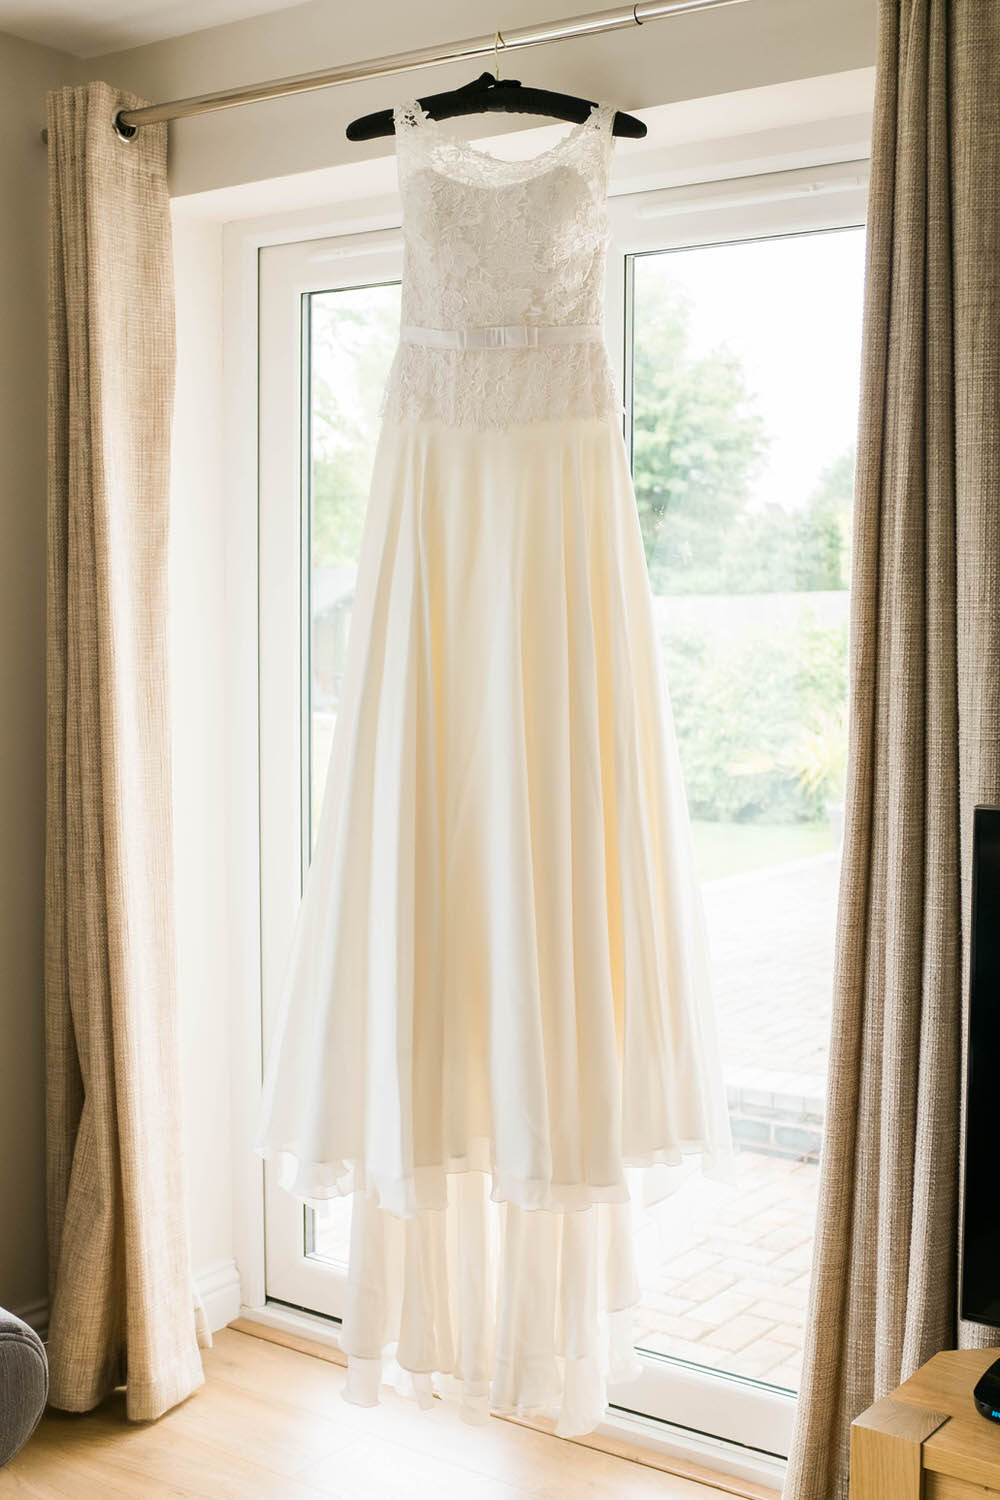 A-brides-wedding-dress-hung-in-a-window-in-Cheltenham.jpg